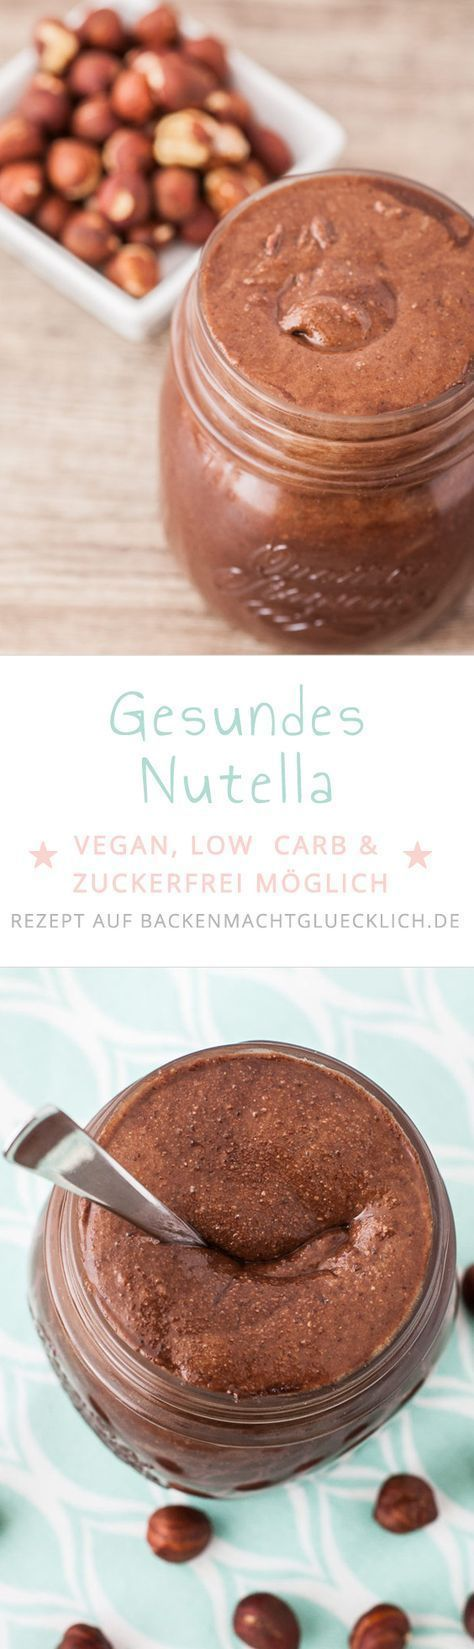 Selbstgemachtes Nutella – #fabriquer #Nutella #Selbstgemachtes